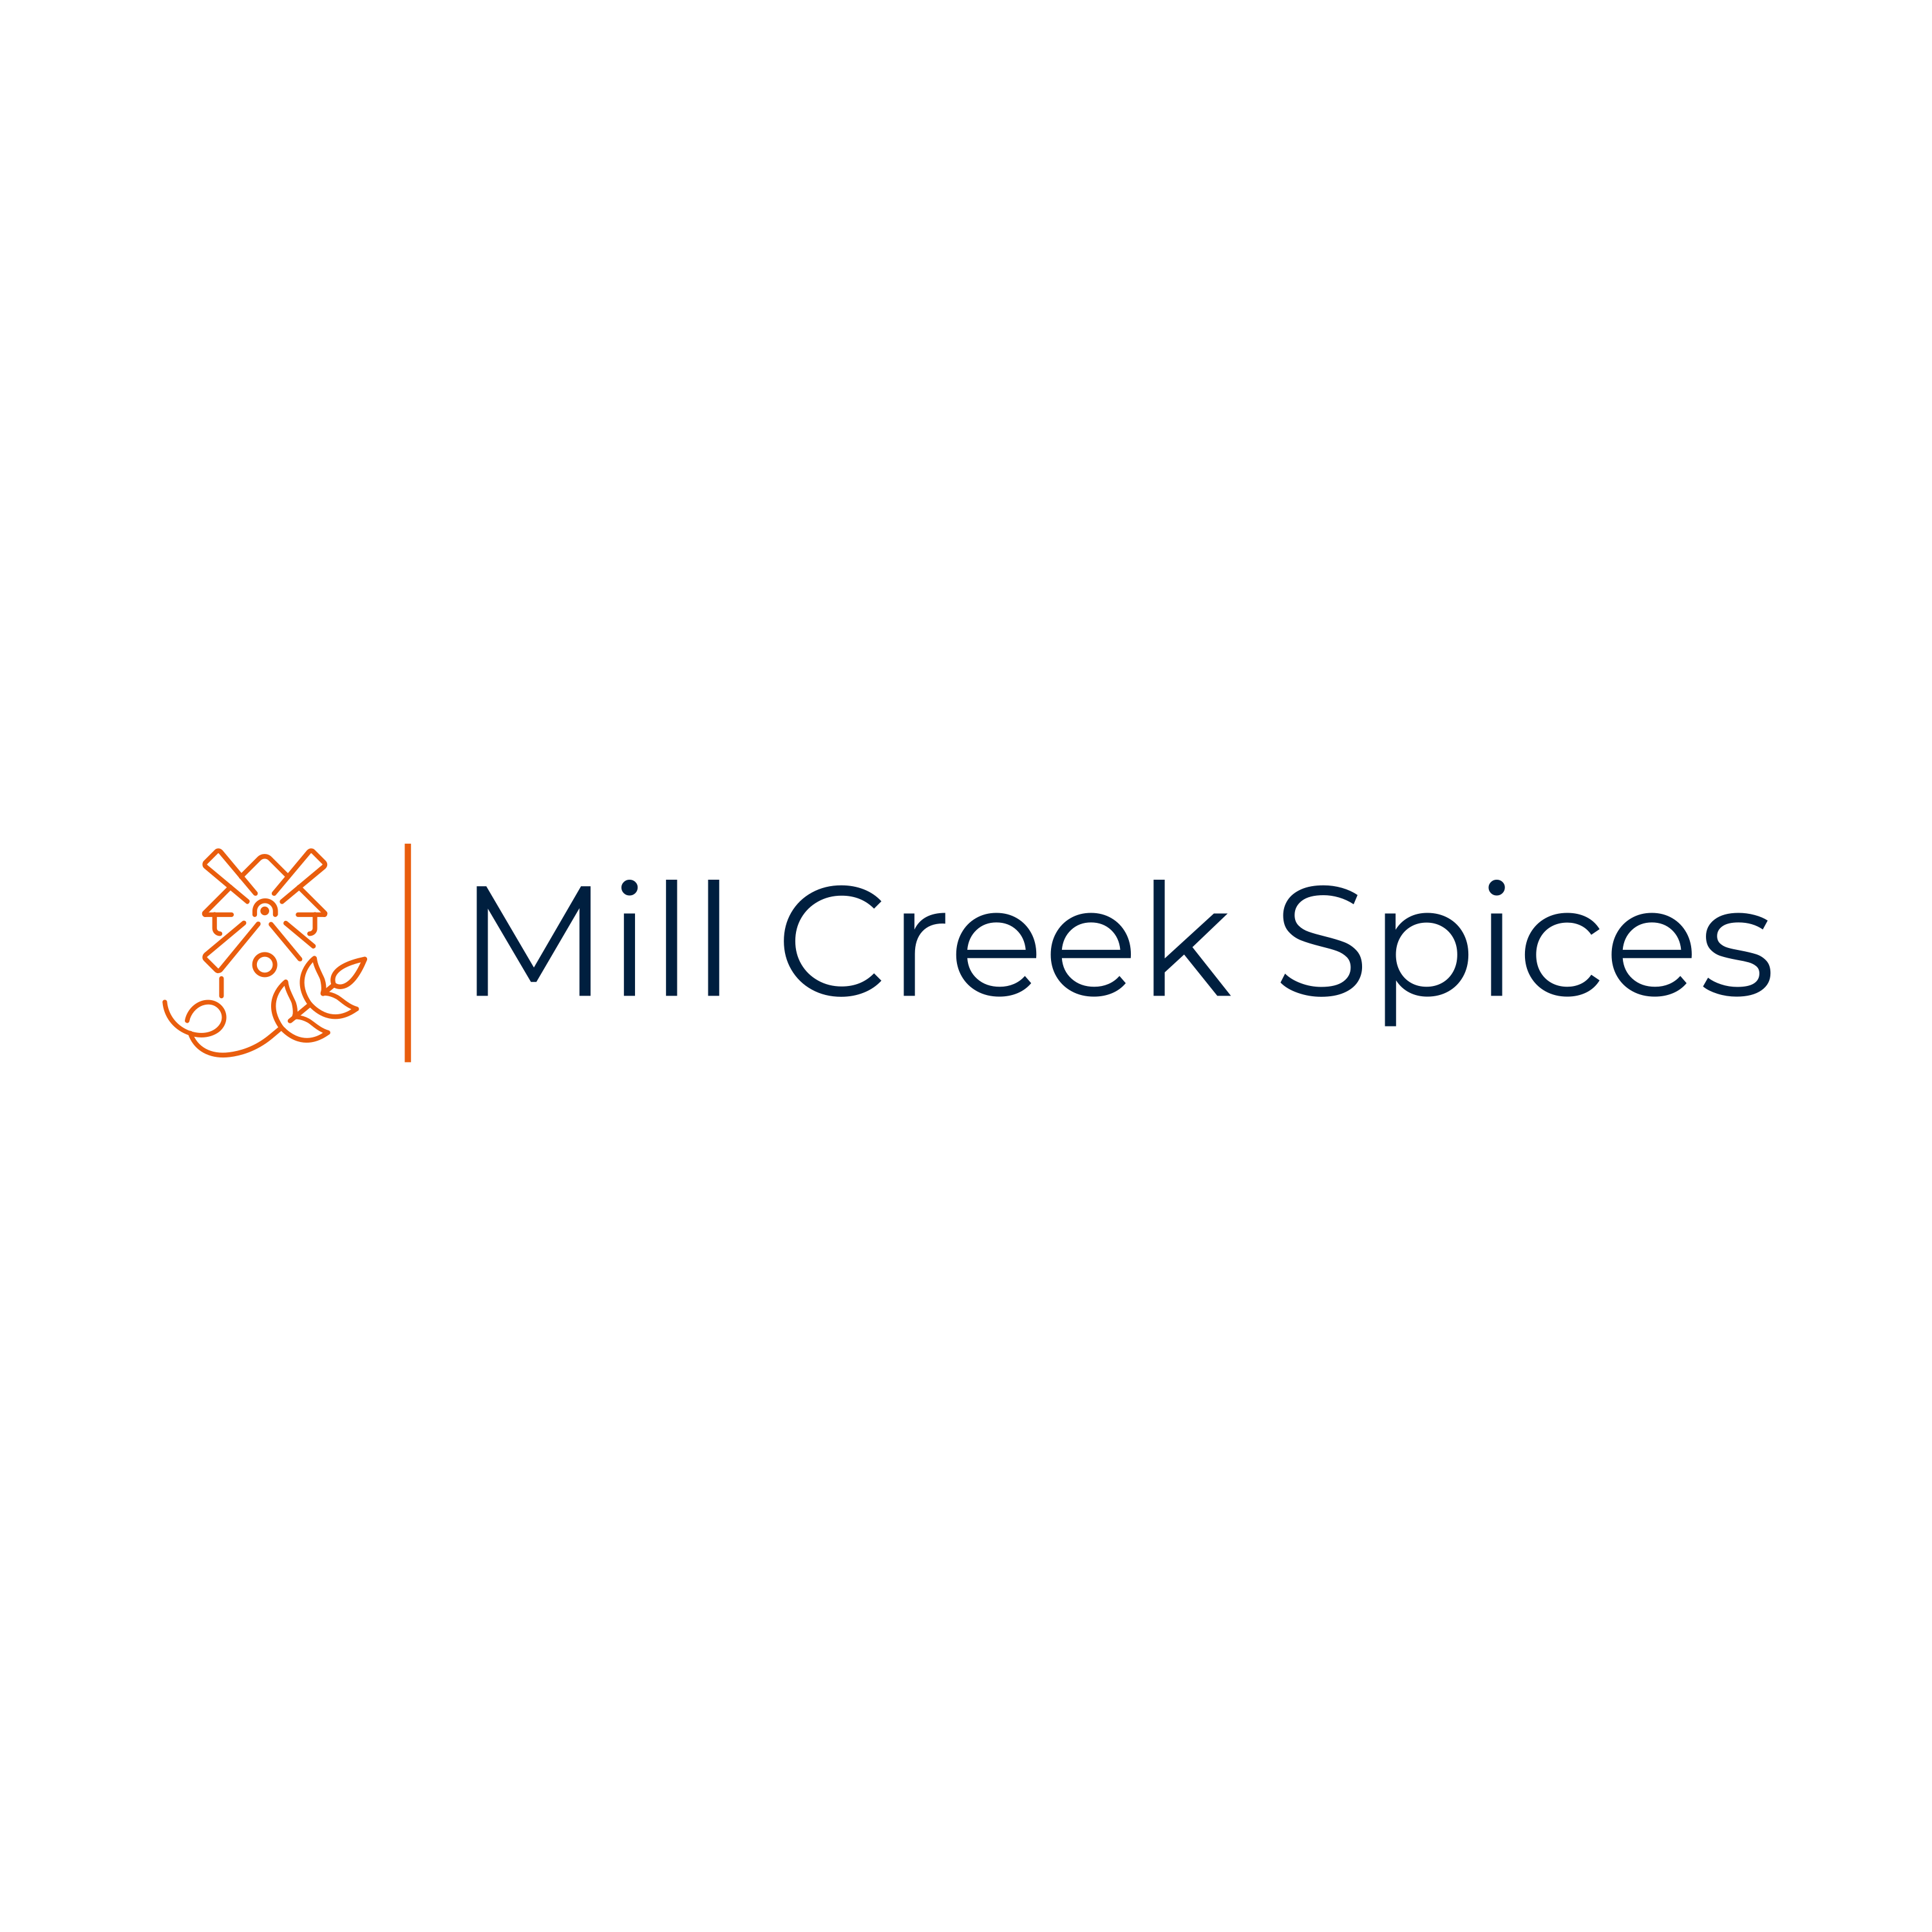 Mill Creek Spices